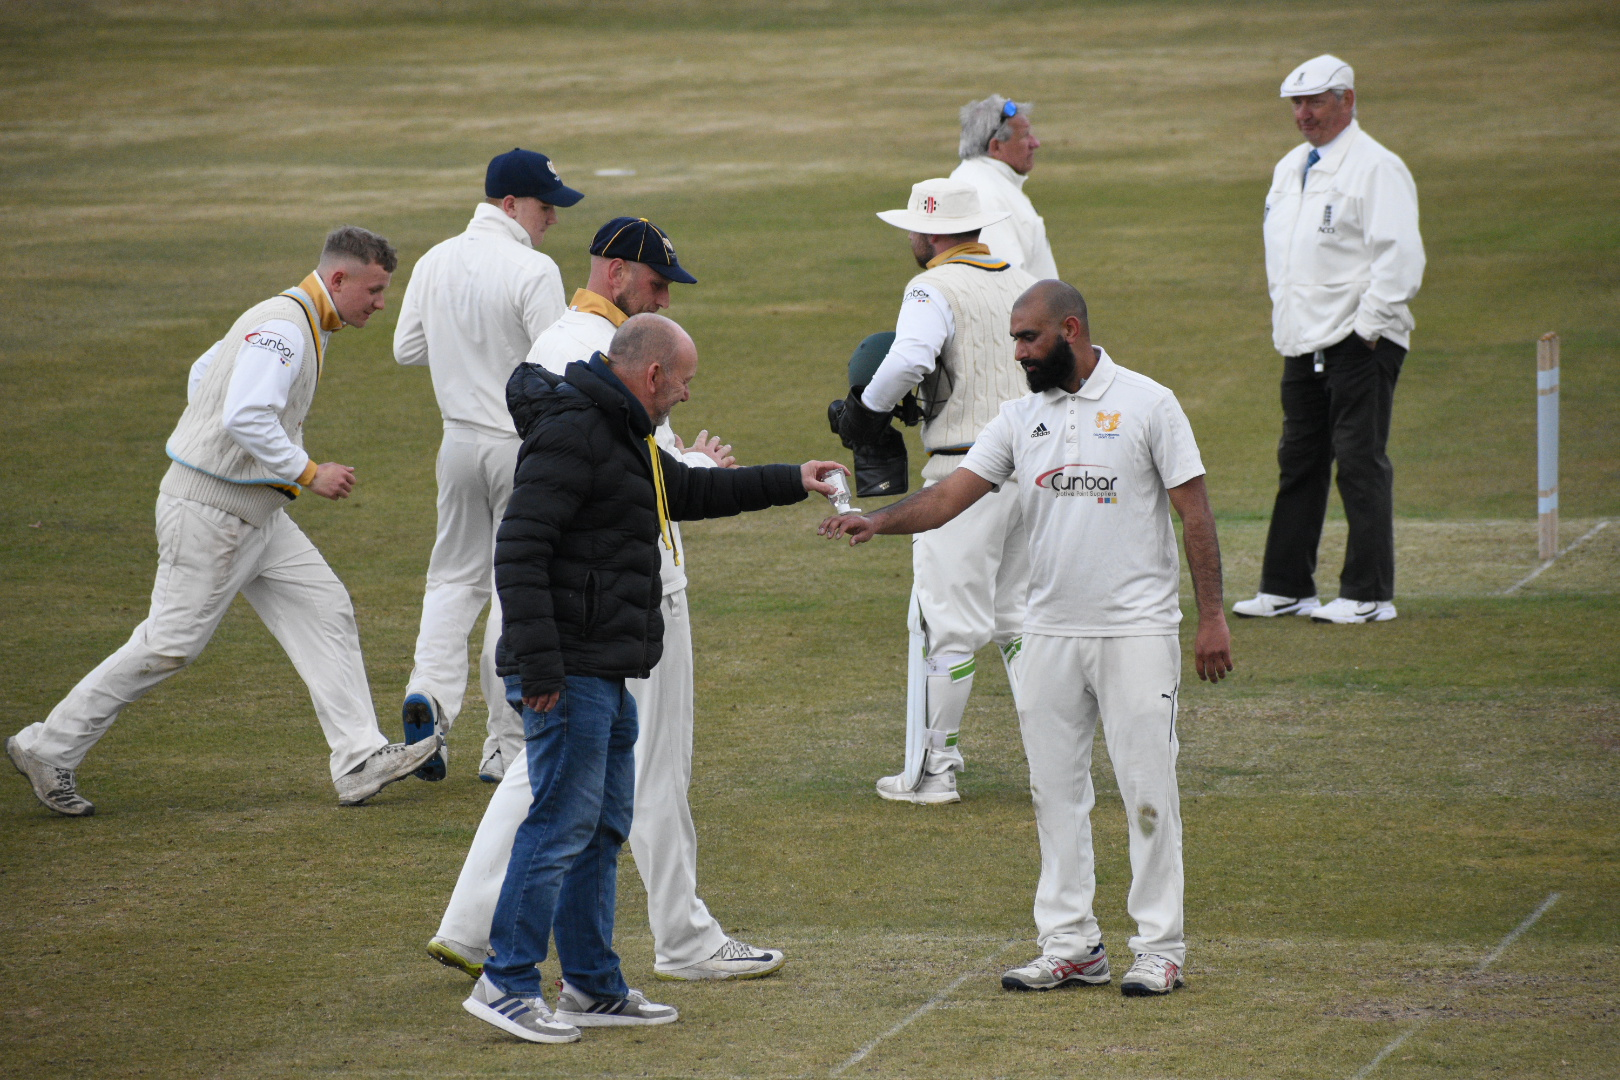 Premiership & Sykes Cup Moves To 50 Overs - Update